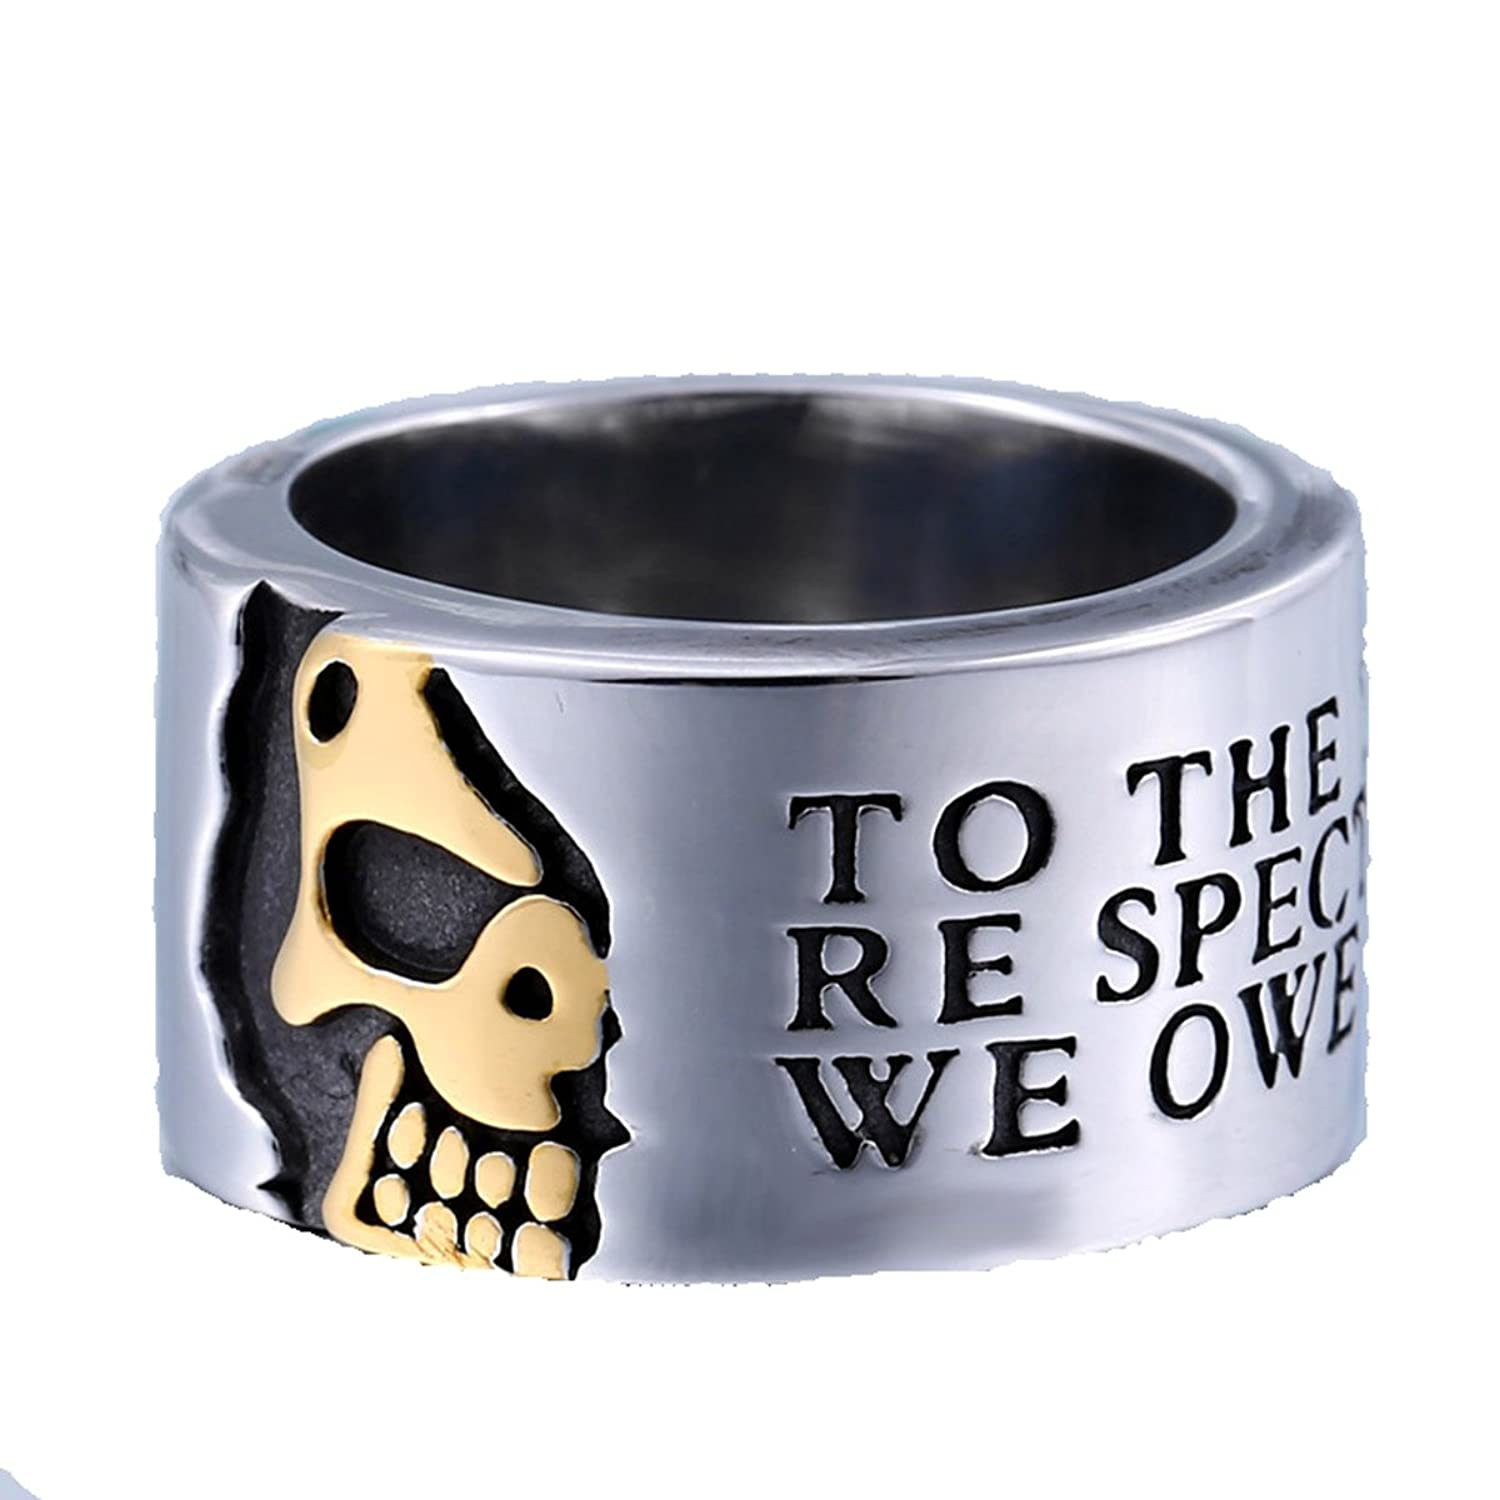 Biker Rings For Men,Harley Rings For Men,Punk Retro Rings for Men,Titanium Steel,To The Living We Owe Respect, But To The Dead We Owe Only The Truth.